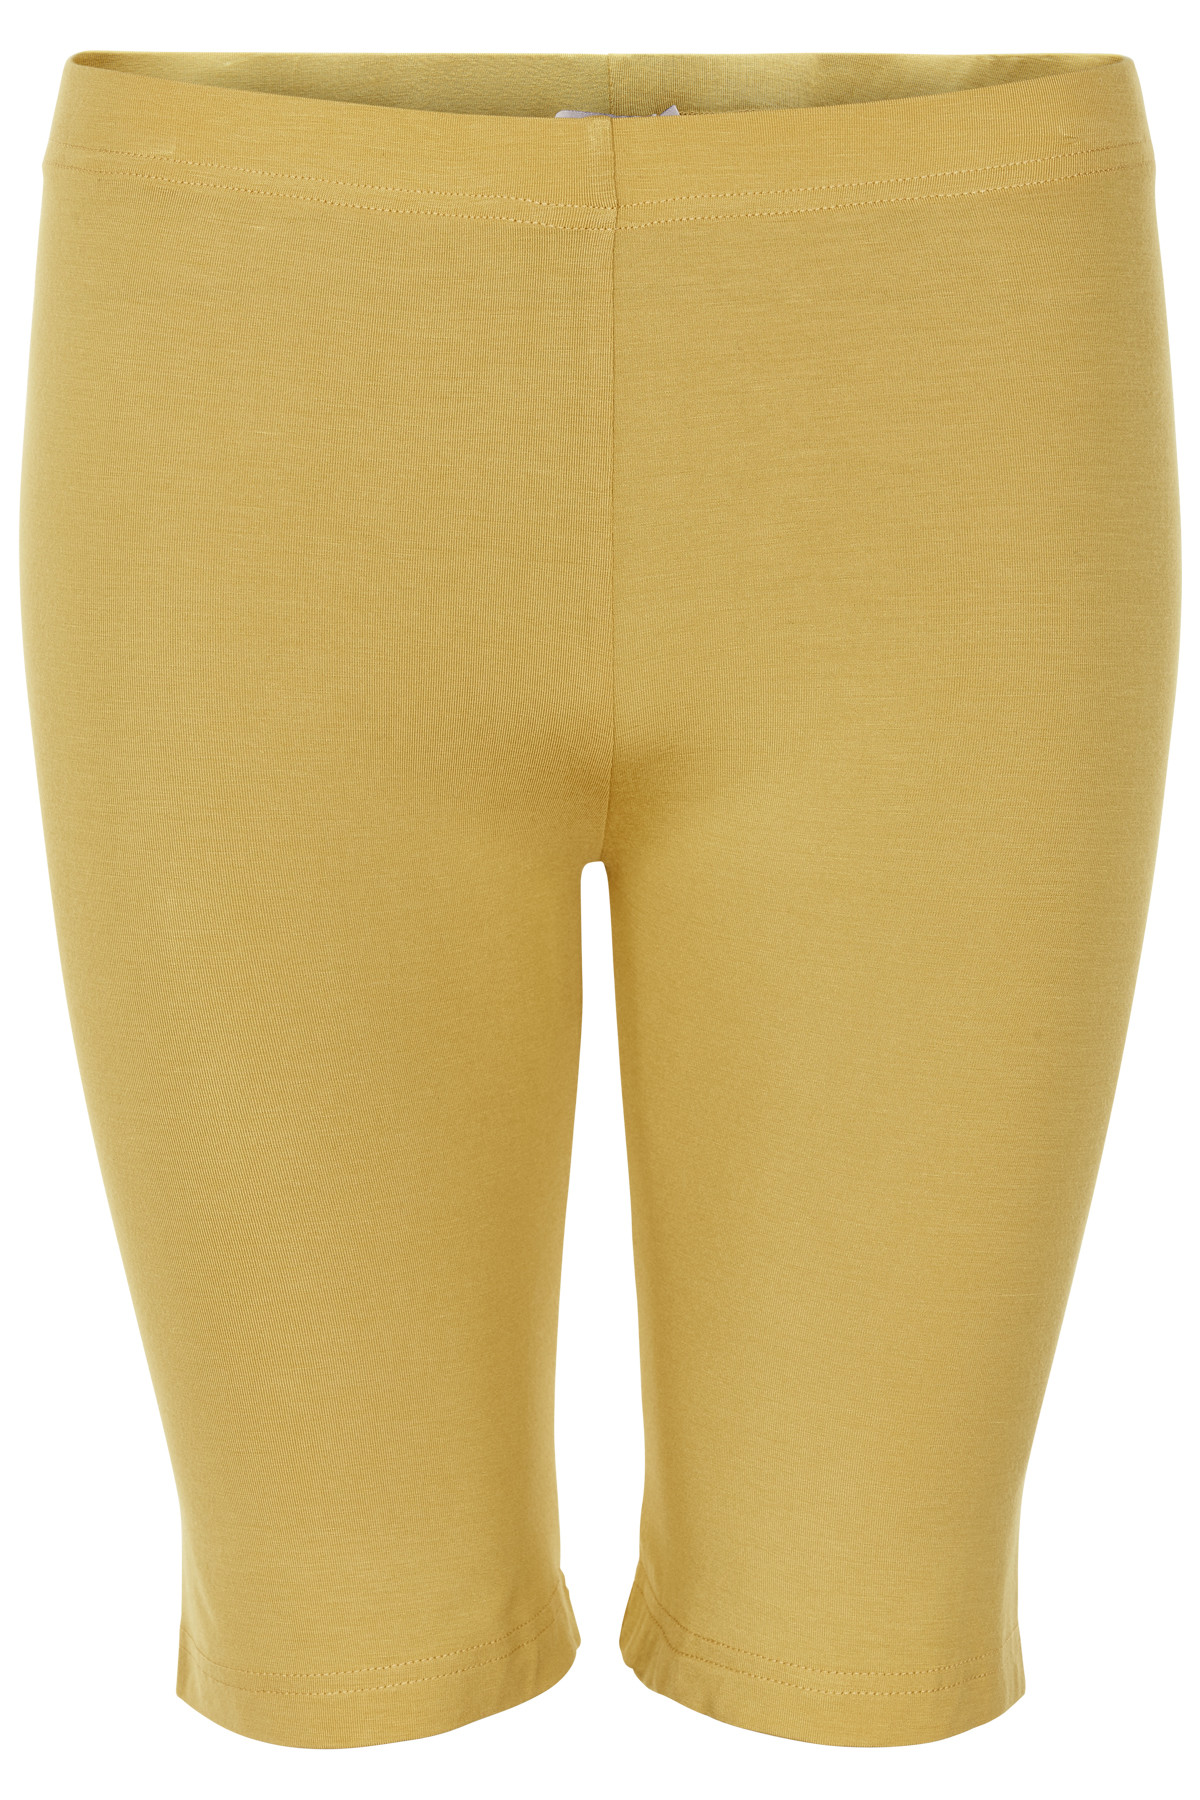 NOA NOA LEGGINGS 1-9349-1 00701 (Yellow, XS)